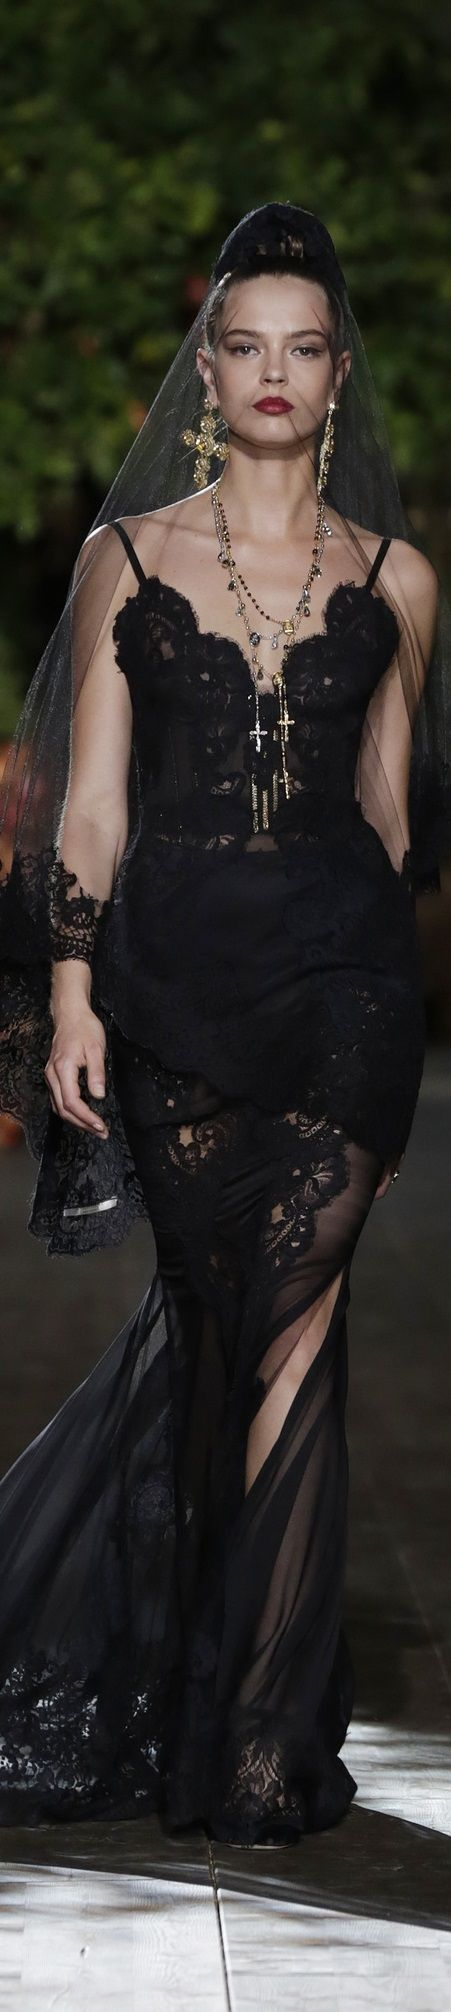 I pinned this by dolce and gabbana because it looks like it's been inspired from the mourning period of queen victoria with the long veil and all black.